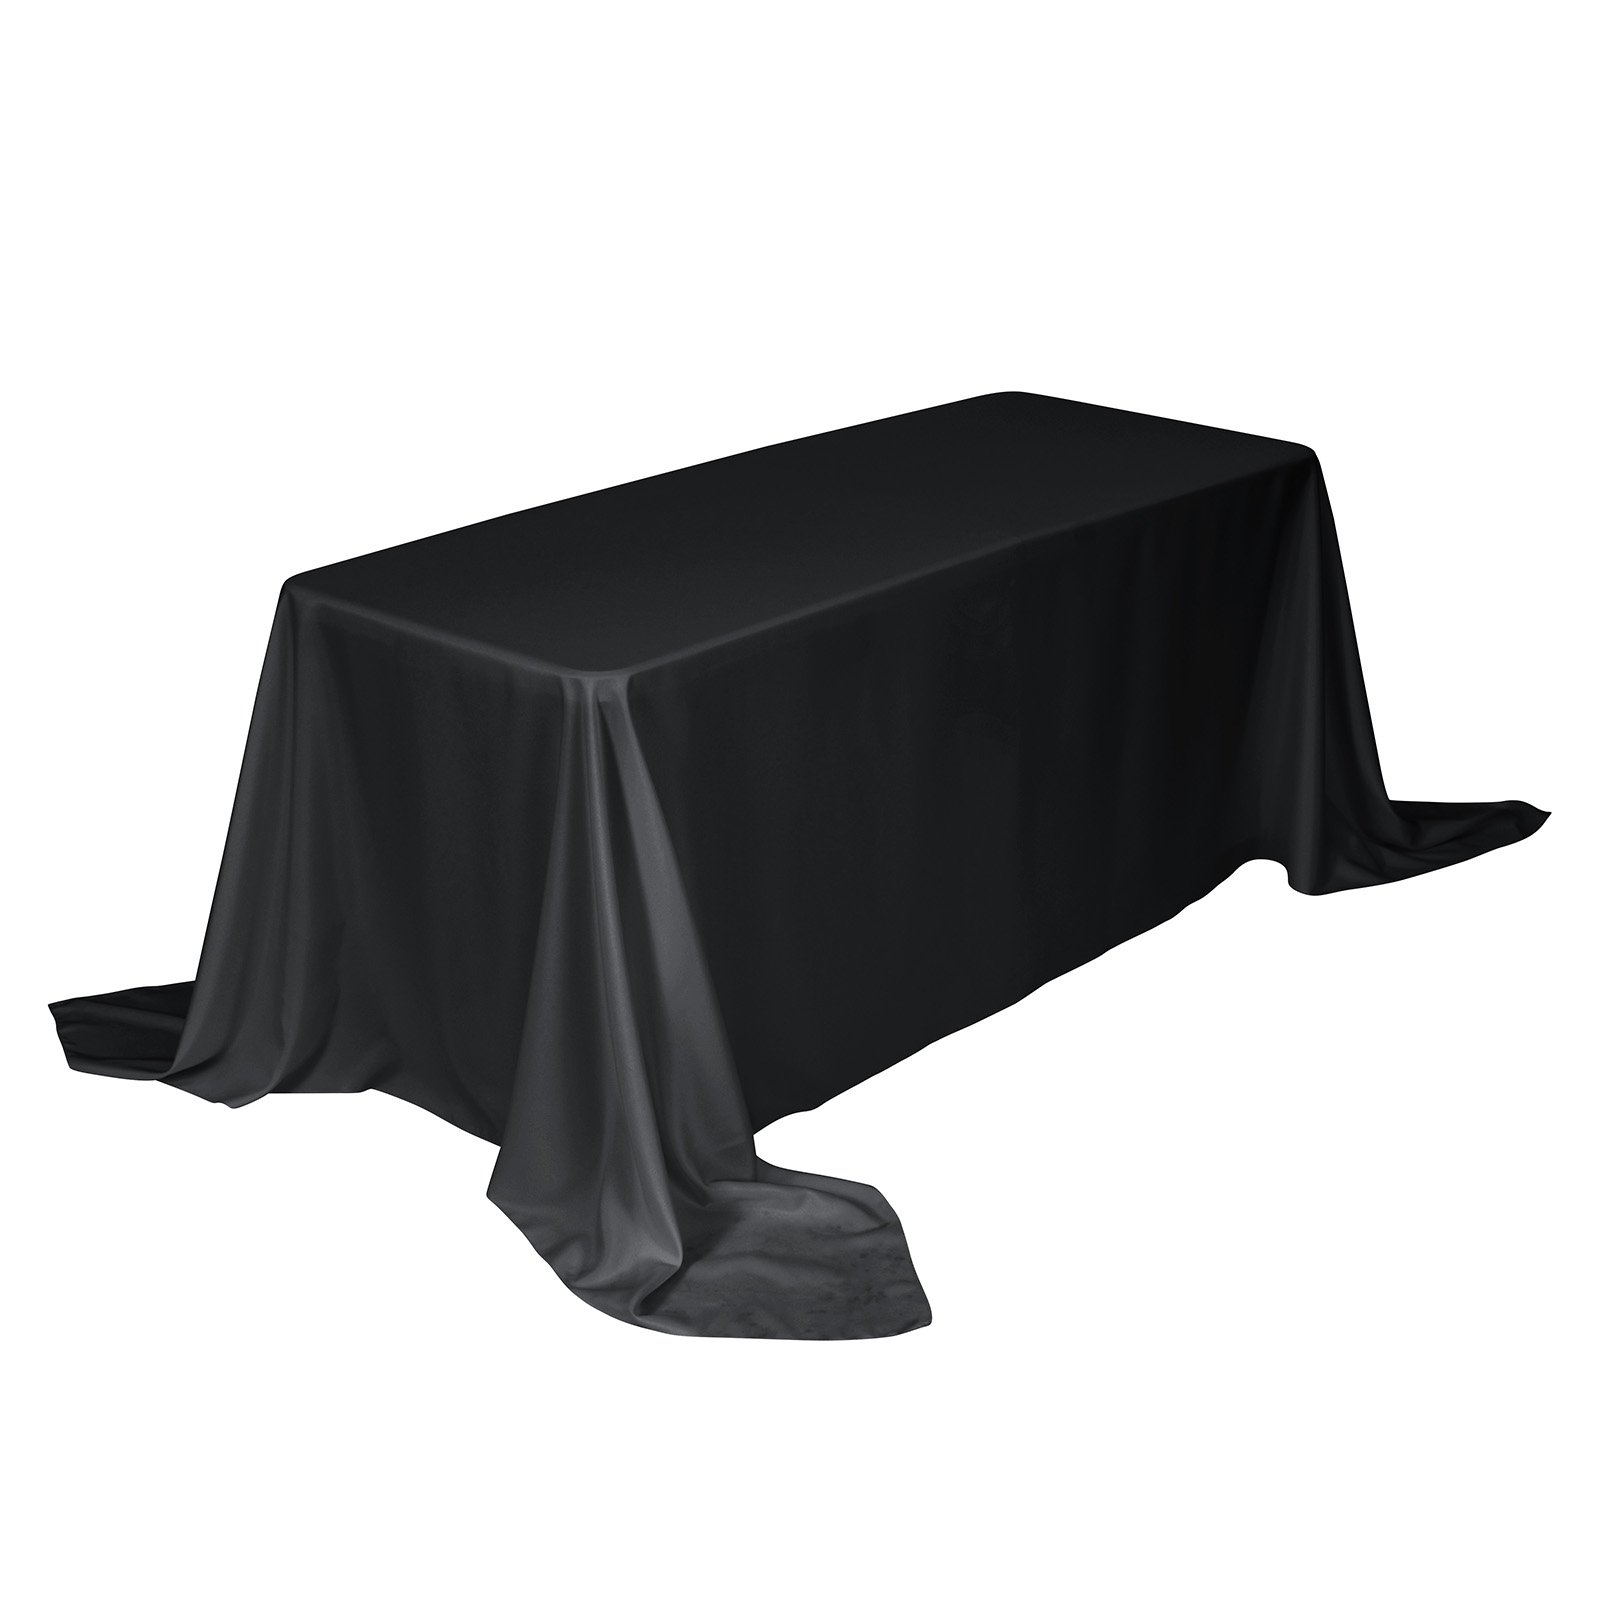 Remedios 90 x 156-inch Rectangle Polyester Tablecloth Table Cover - Wedding Restaurant Party Banquet Decoration, Black